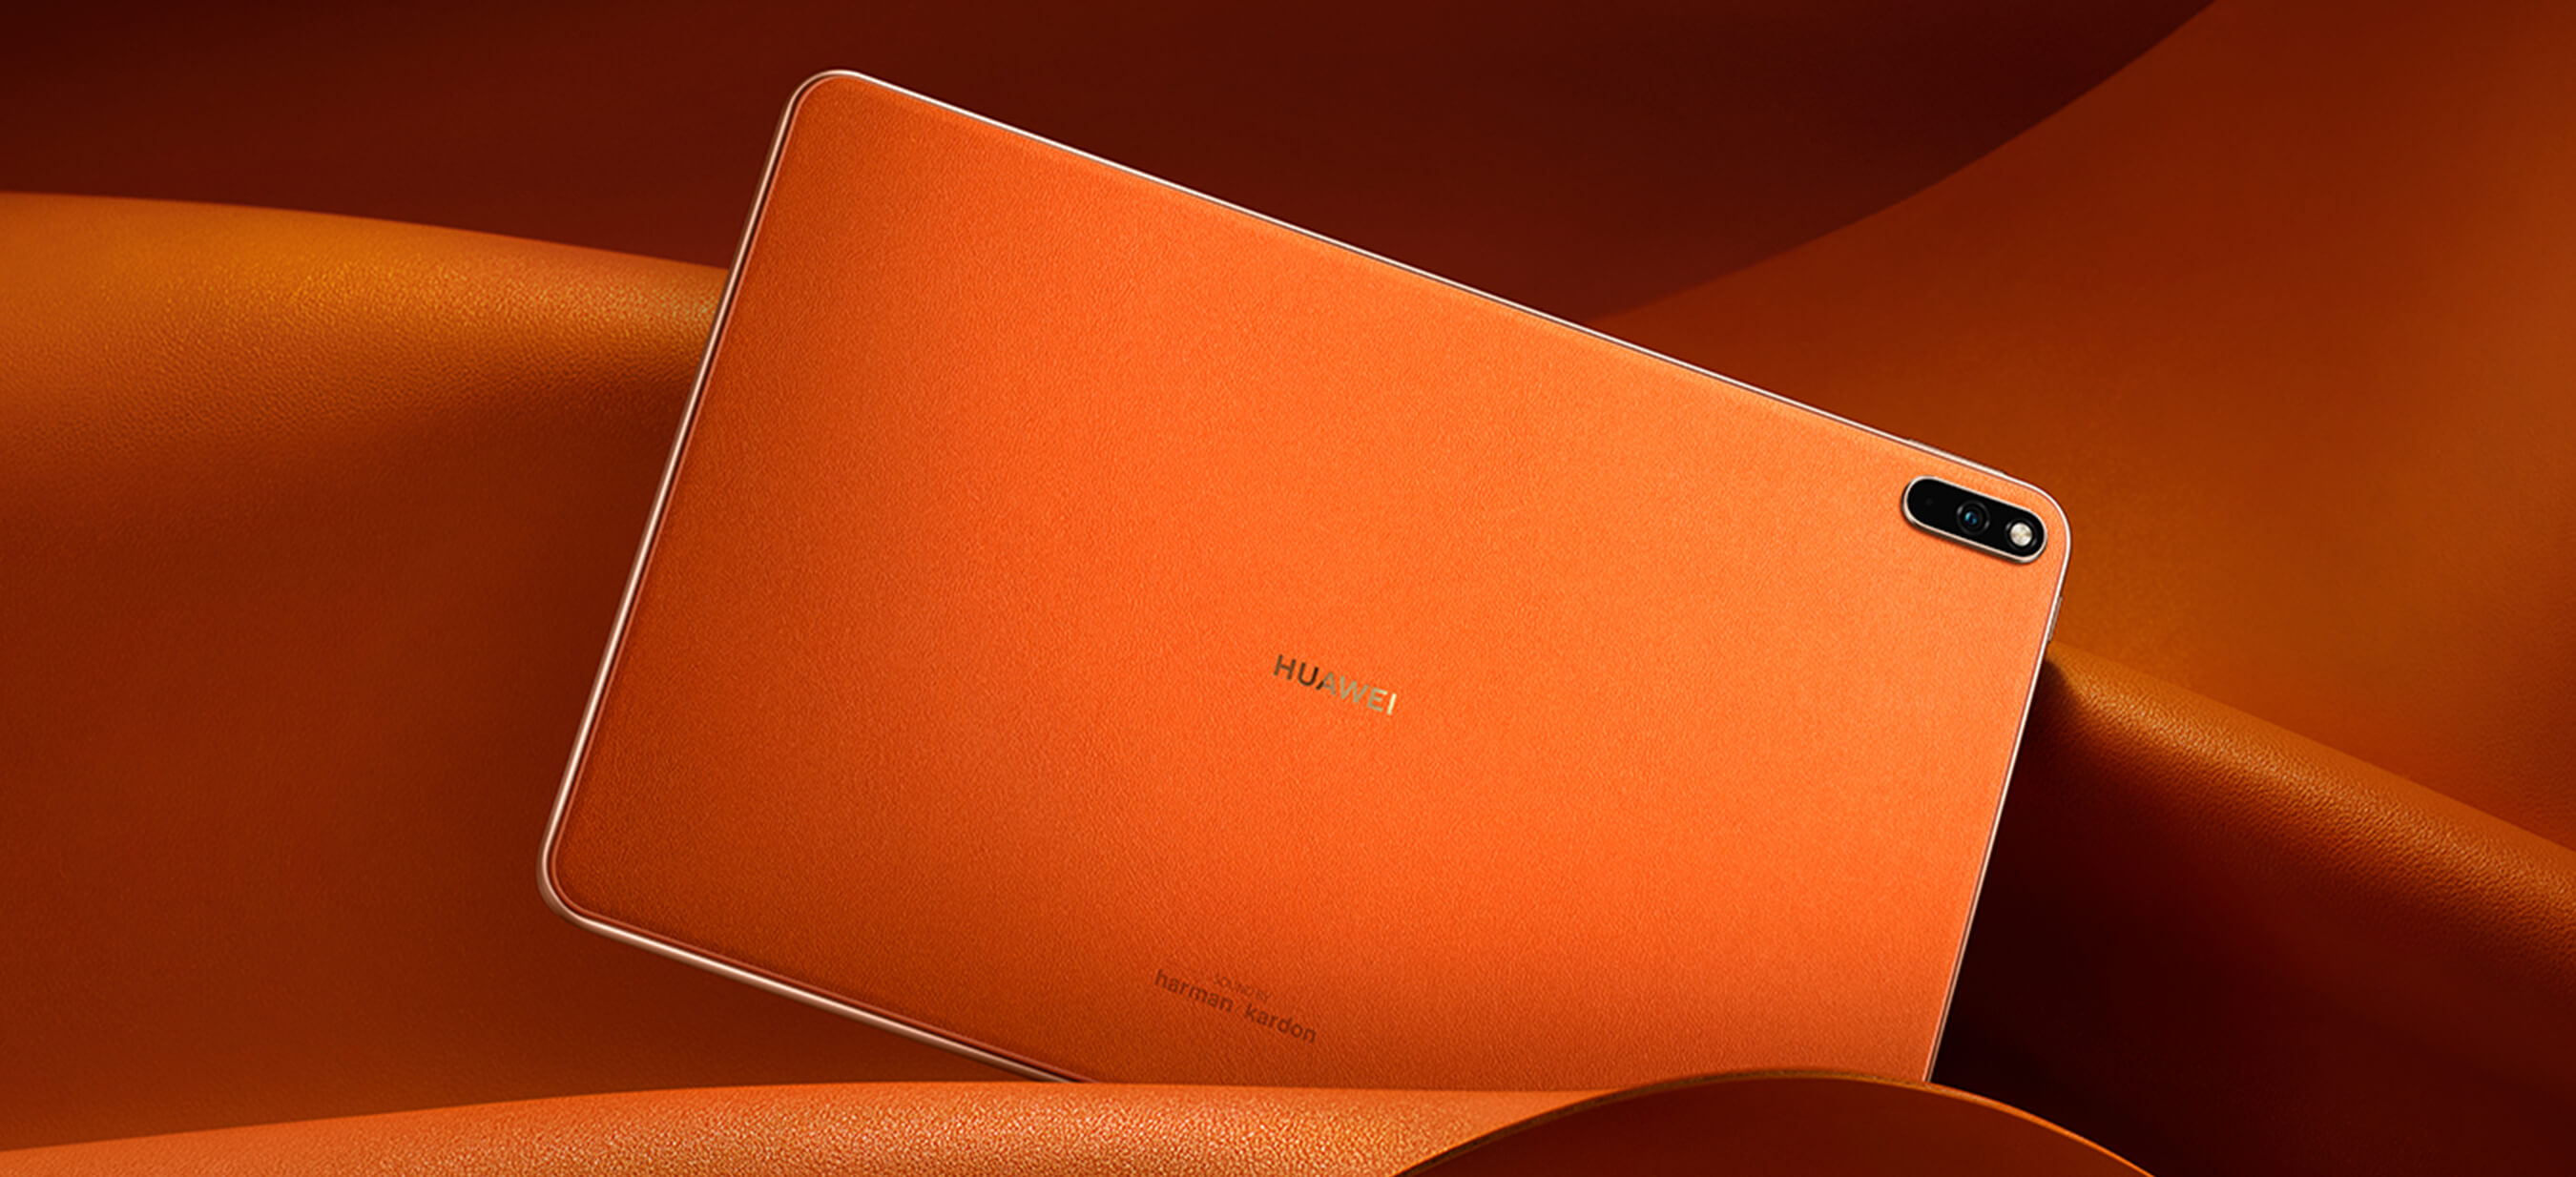 huawei matepad pro color orange